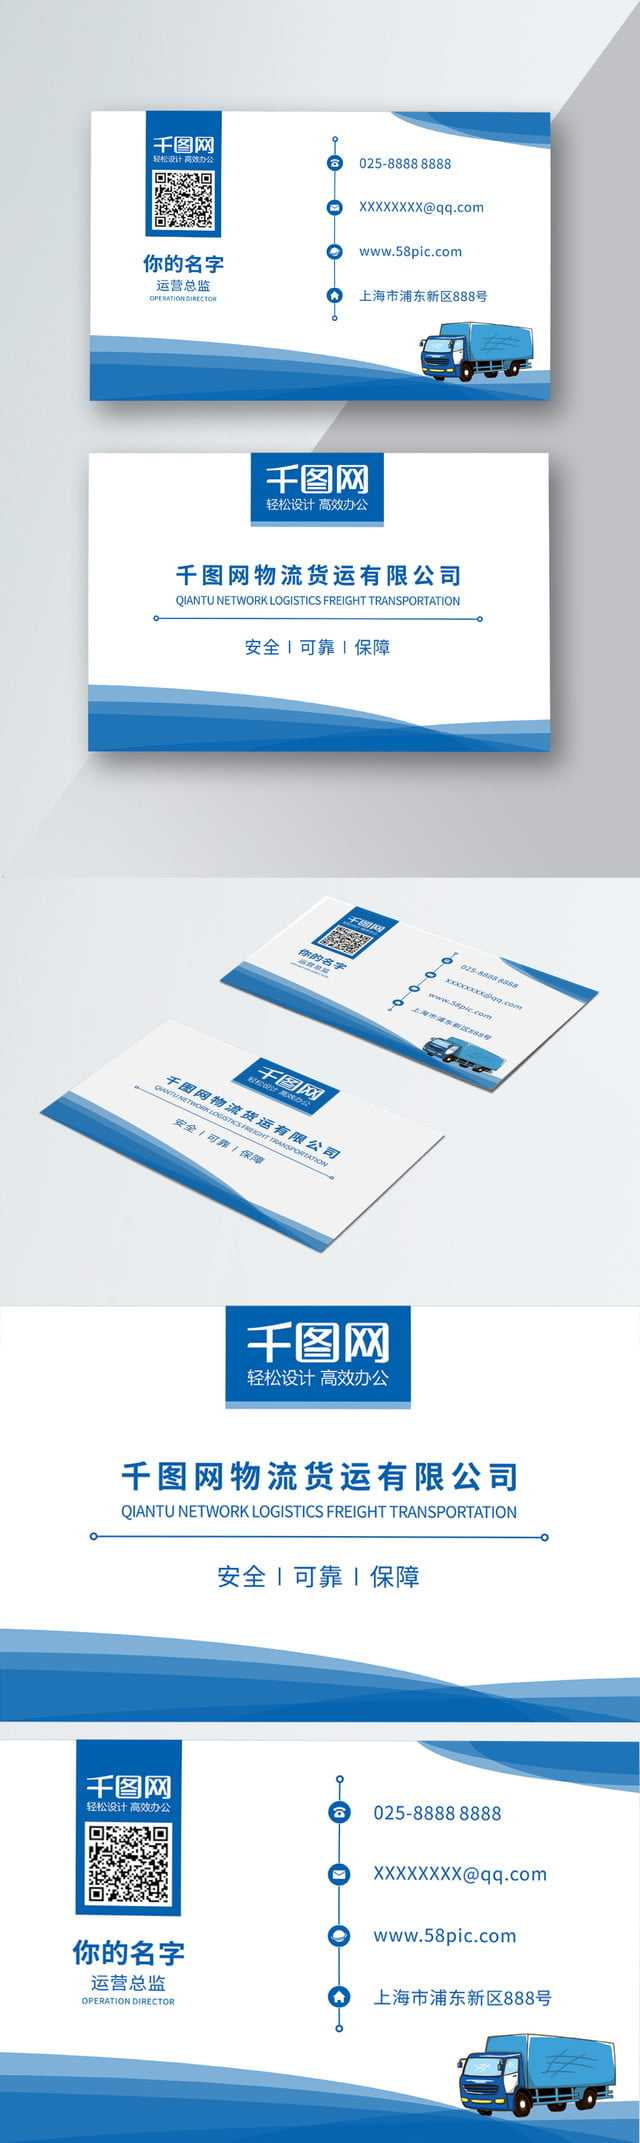 Cargo Company Business Card Material Download Shipping Throughout Transport Business Cards Templates Free